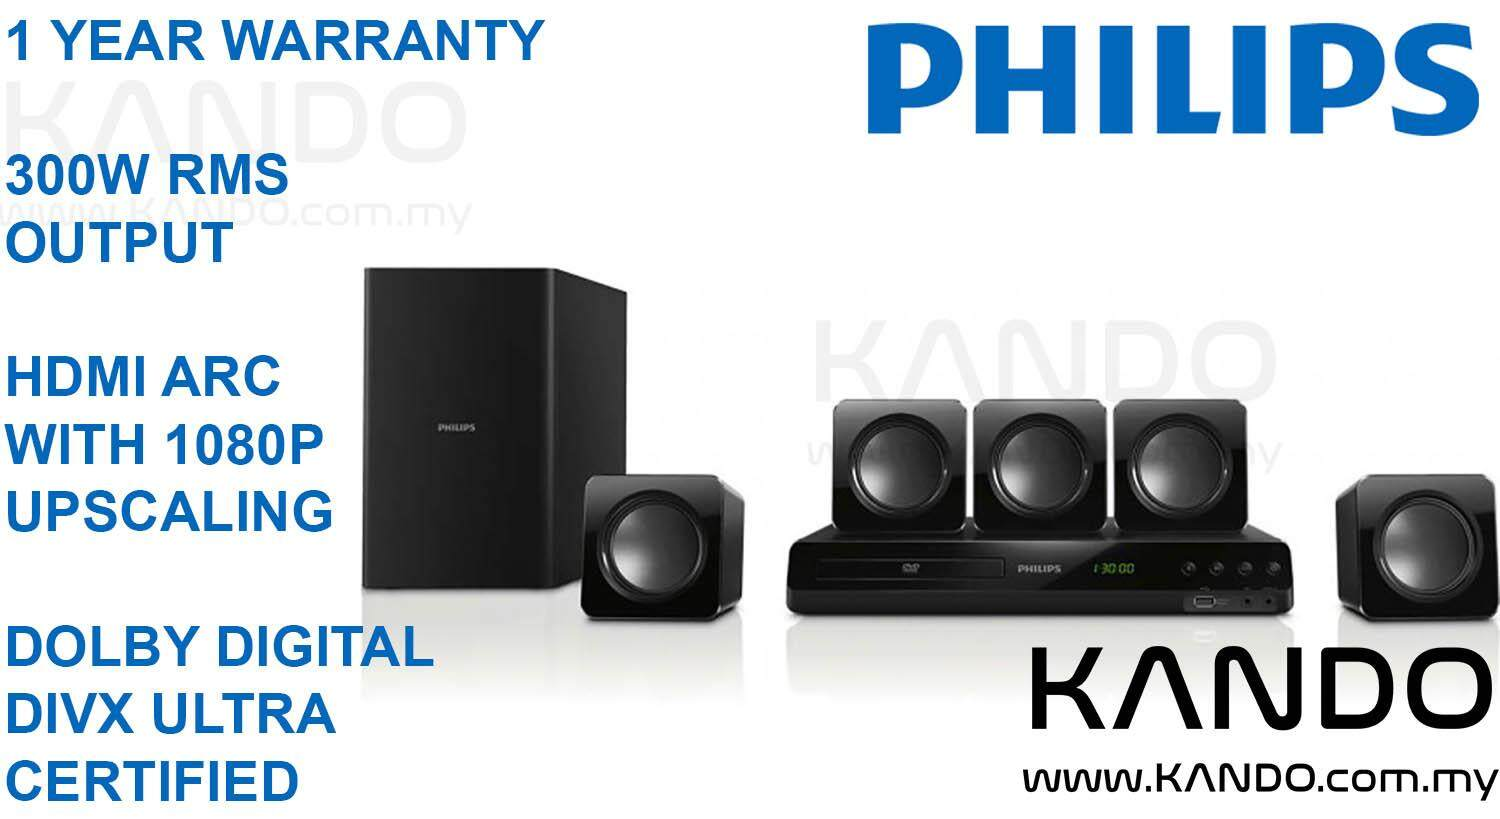 Philips 5.1 Home Theater System Philips HTD3509/98 DVD 5.1 Home Theater System 5.1 Channel Amplifier DVD Player DIVX Player DOLBY Player USB Player soundbar